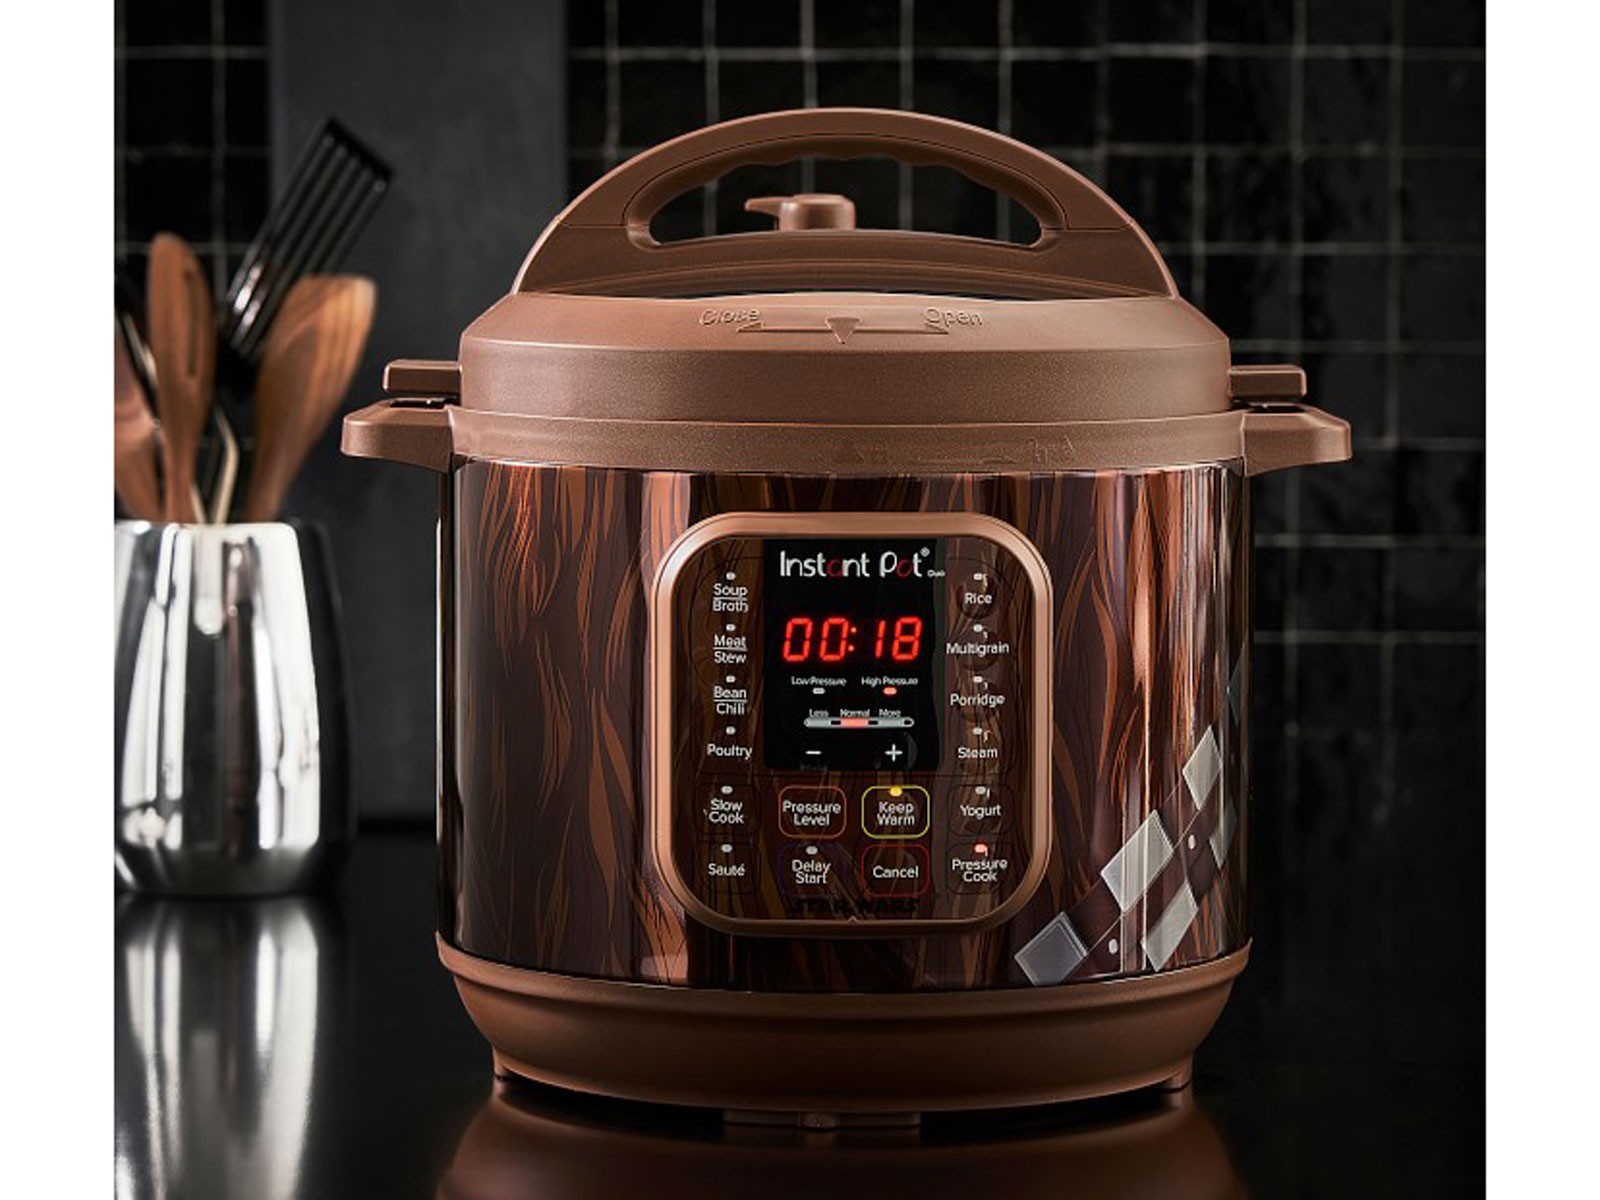 chewbacca star wars instant pot